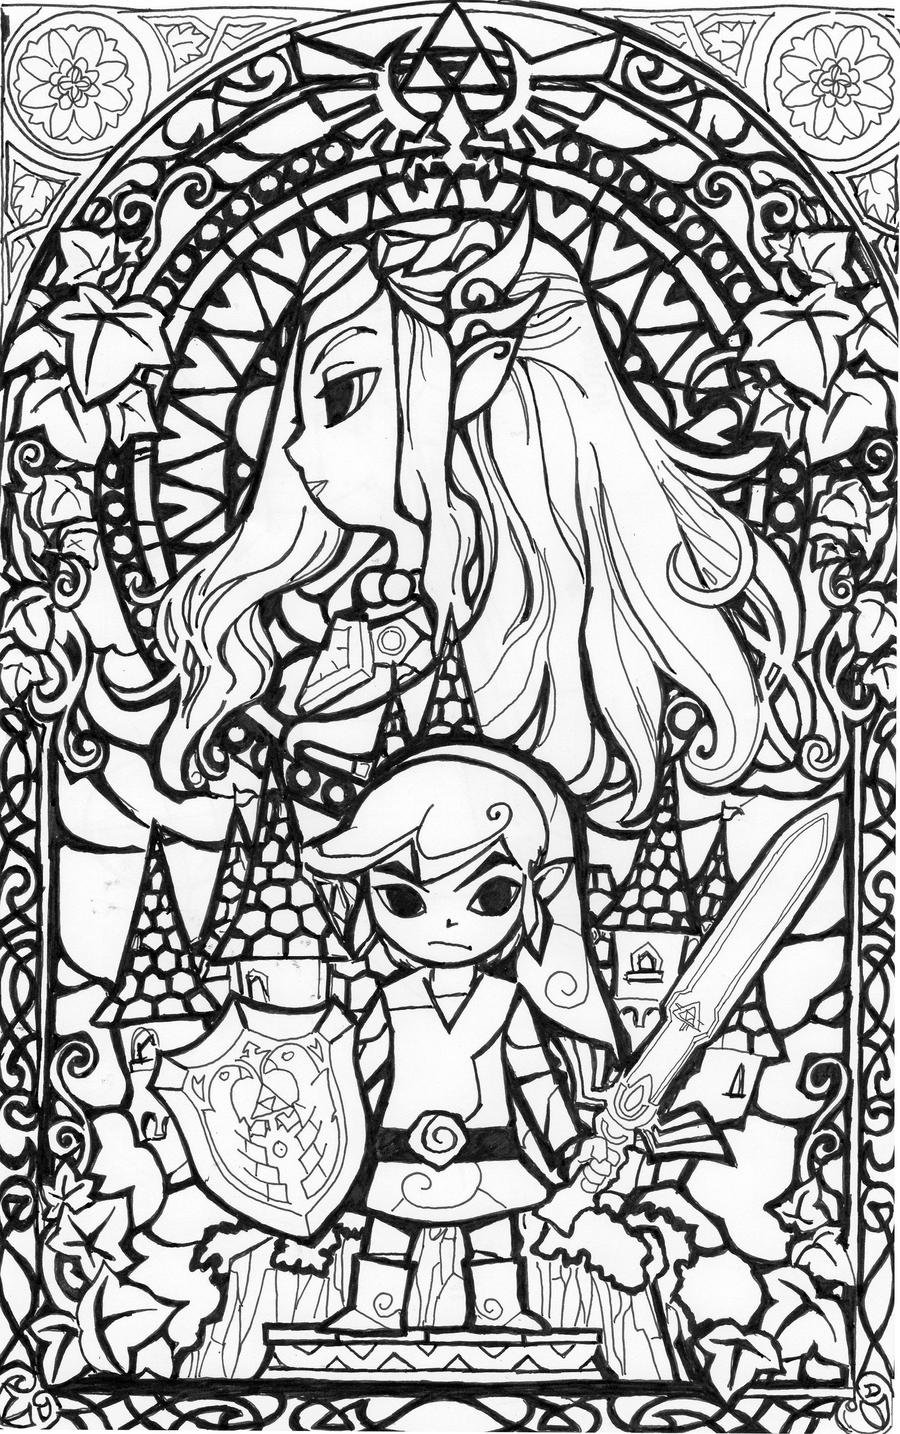 Zelda blackwhite glass window by aiduqui on deviantart for The legend of zelda coloring pages